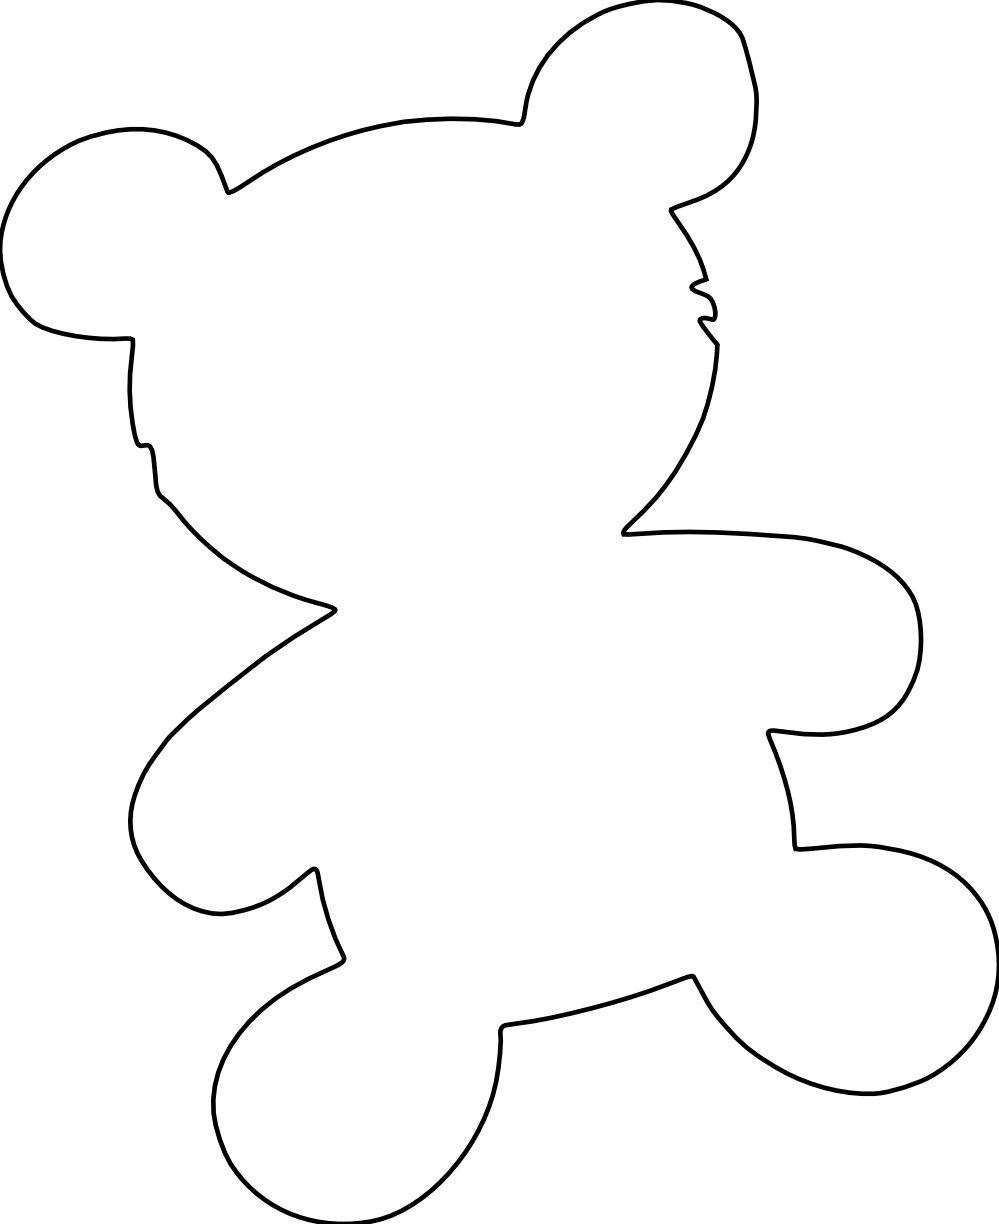 999x1224 Clip Art Bear Silhouette Black White Line Teddy